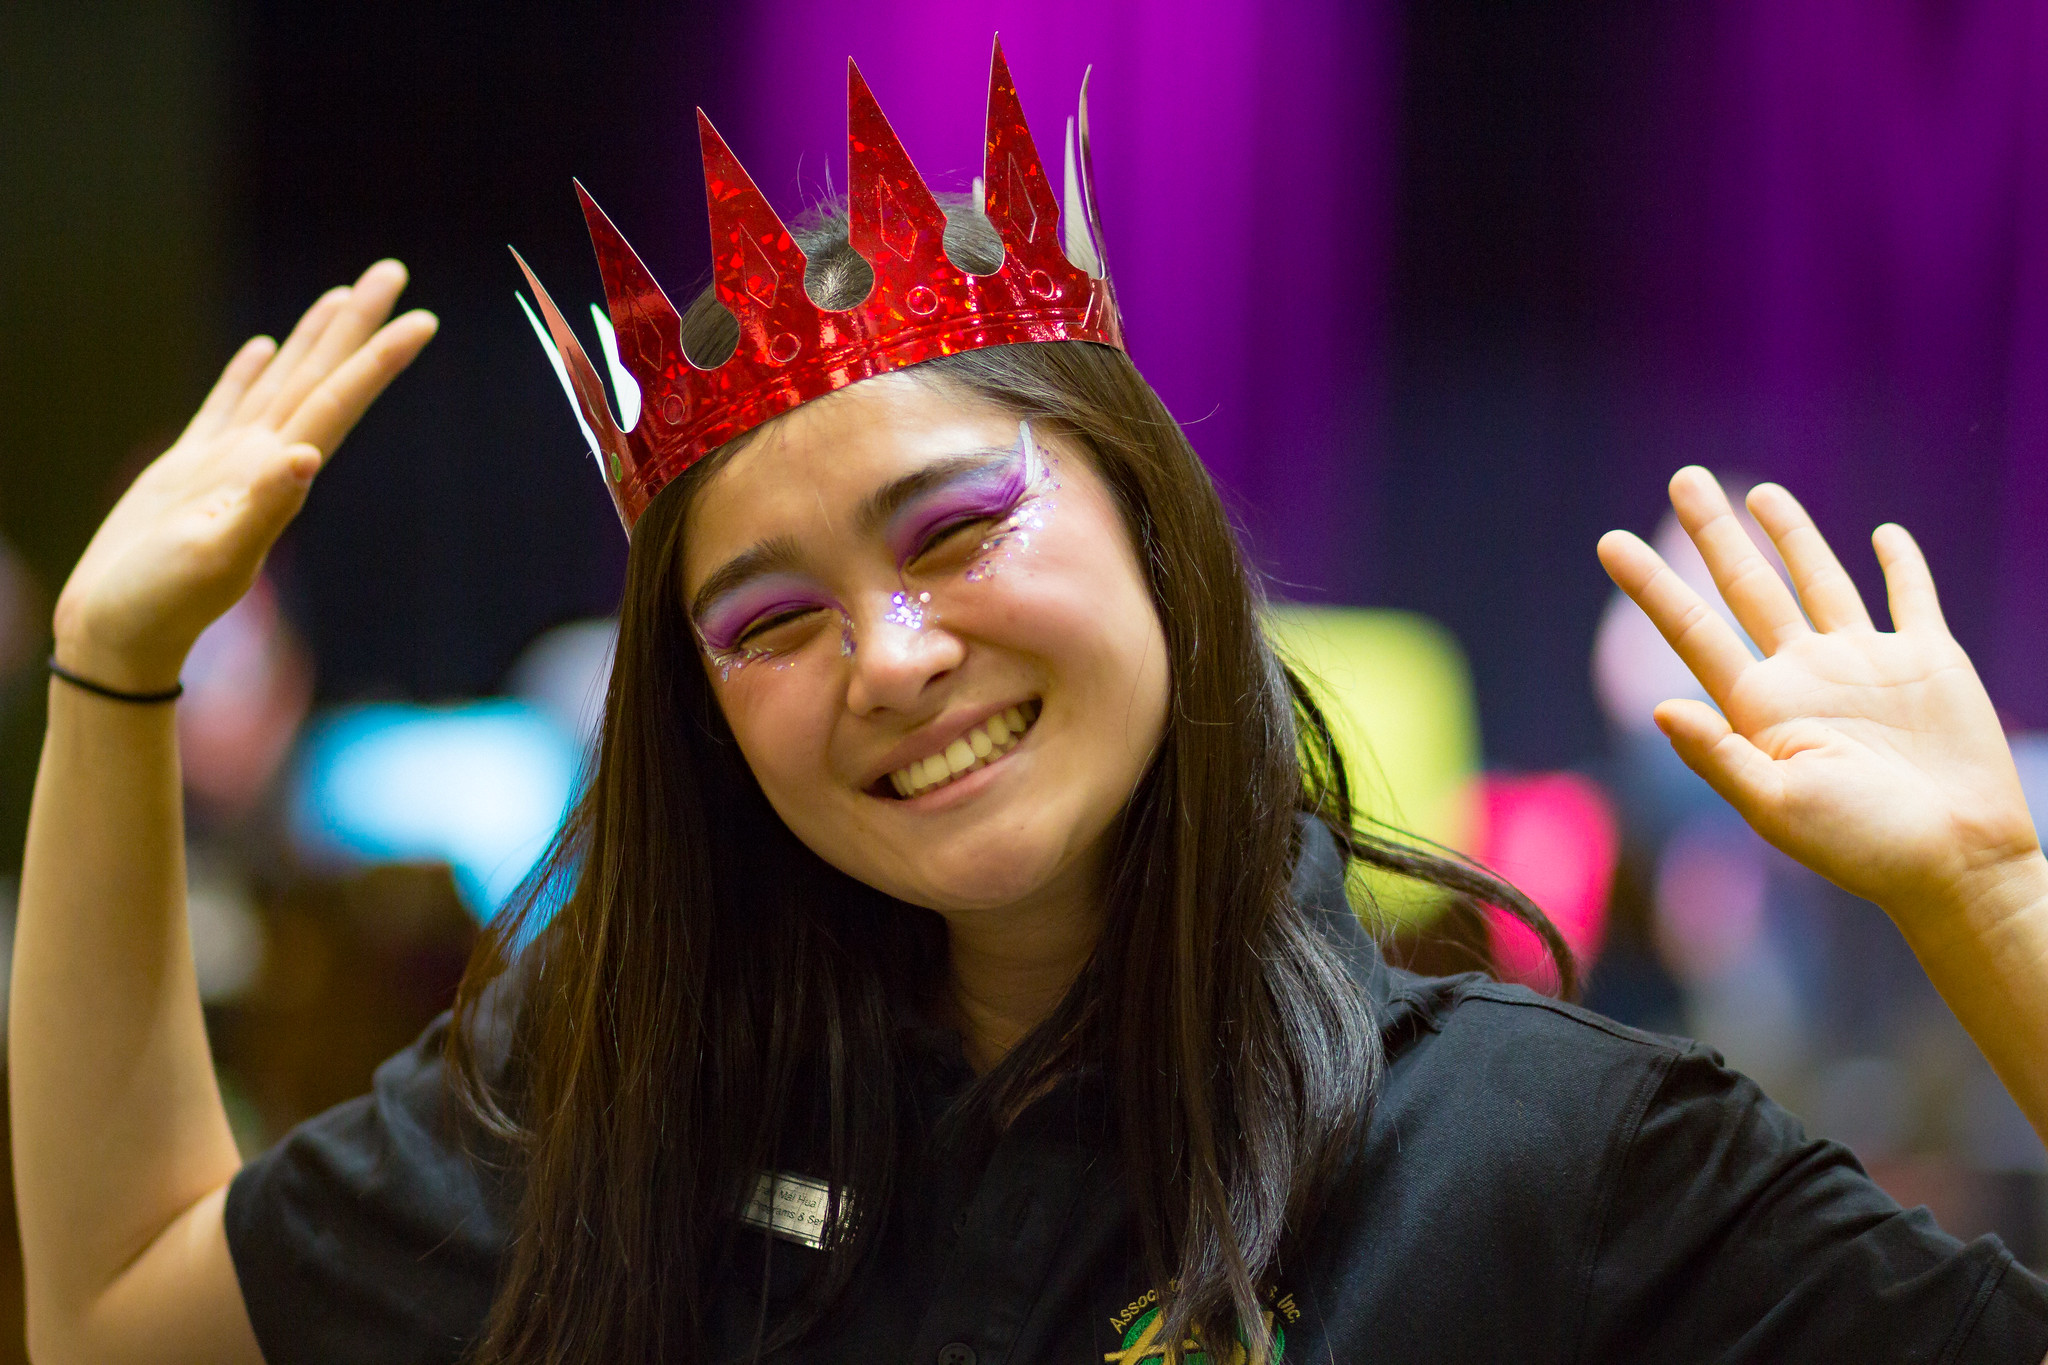 Image of ASI Secretary of Programs & Services, Chau Hau, in purple face paint and a red crown.